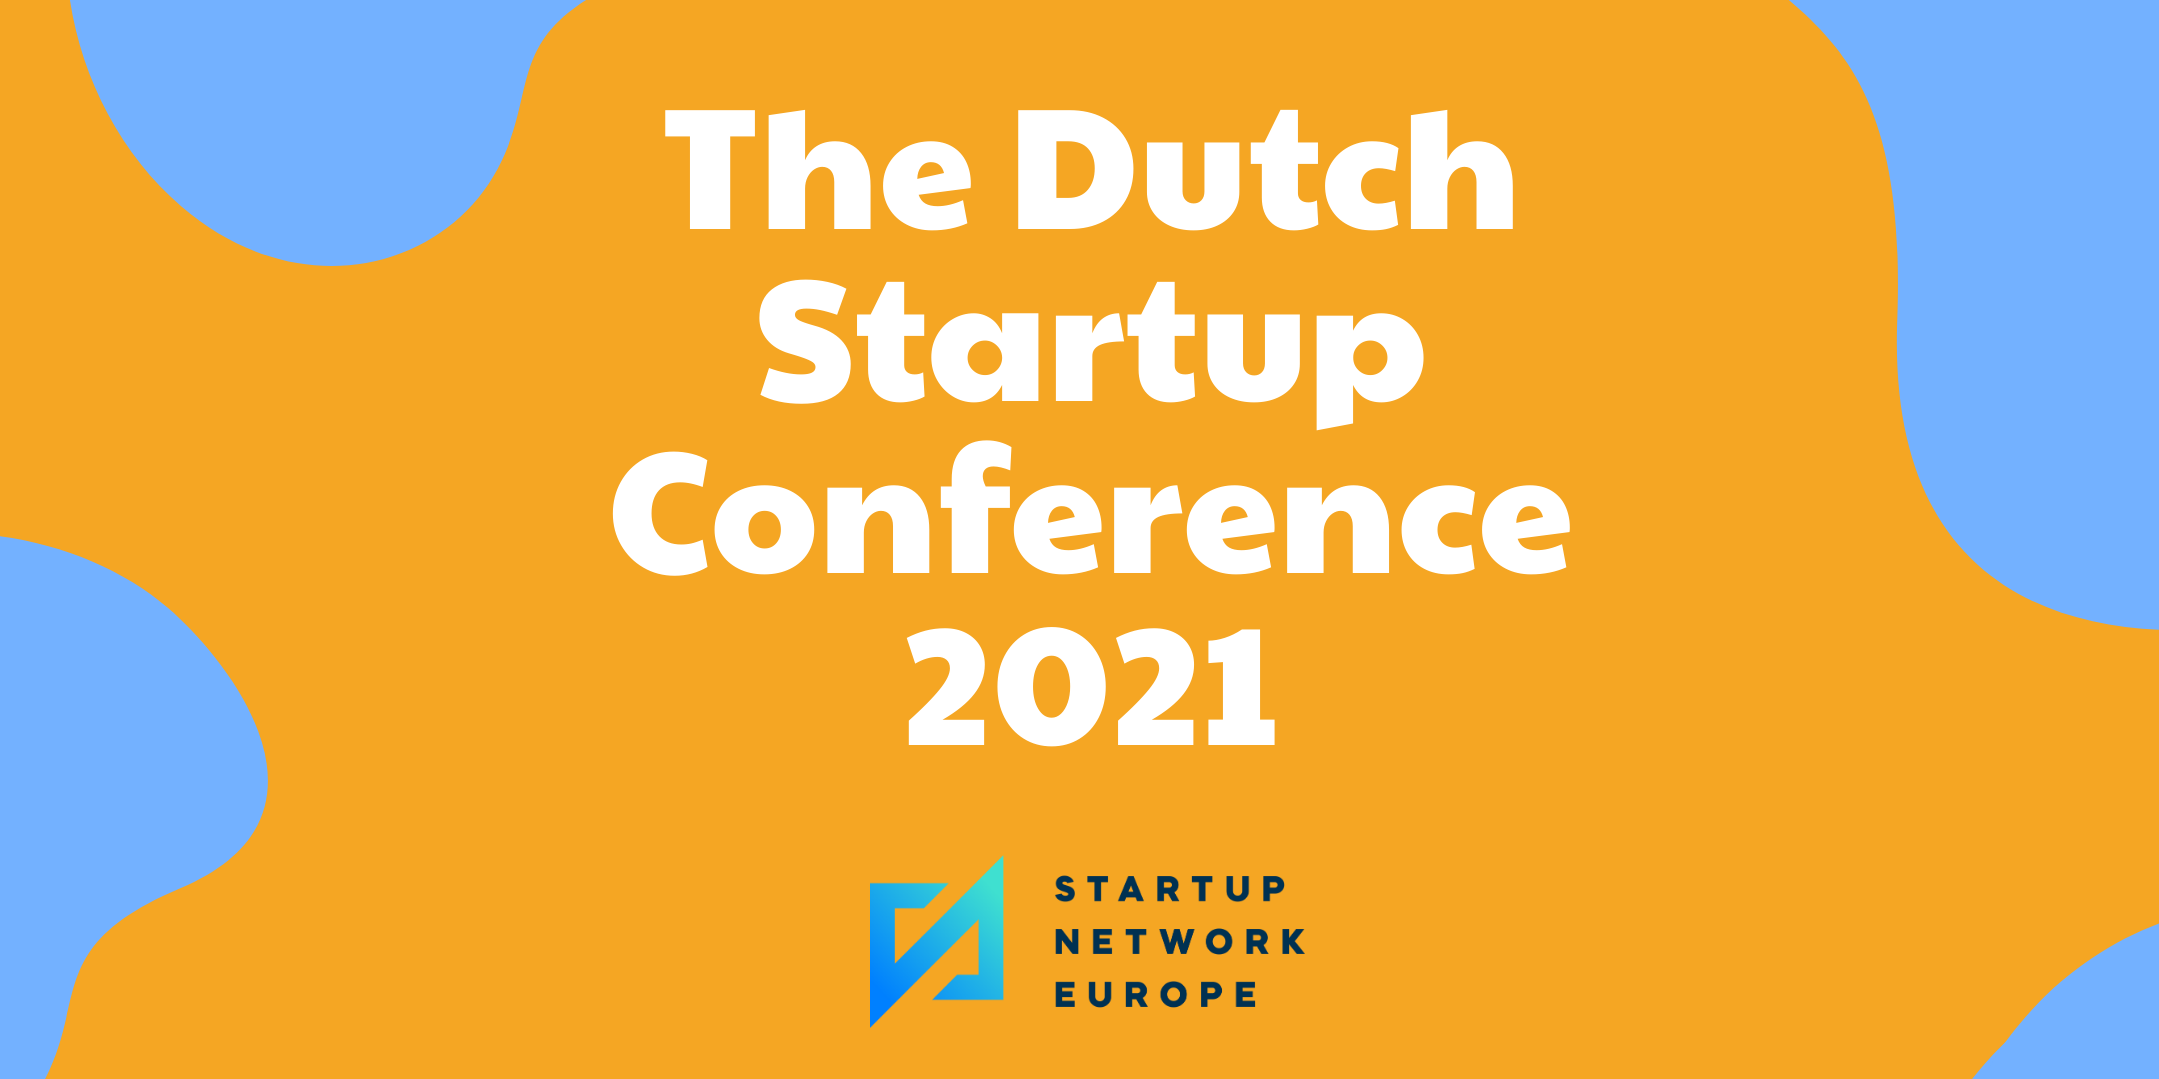 The Dutch Startup Conference 2021